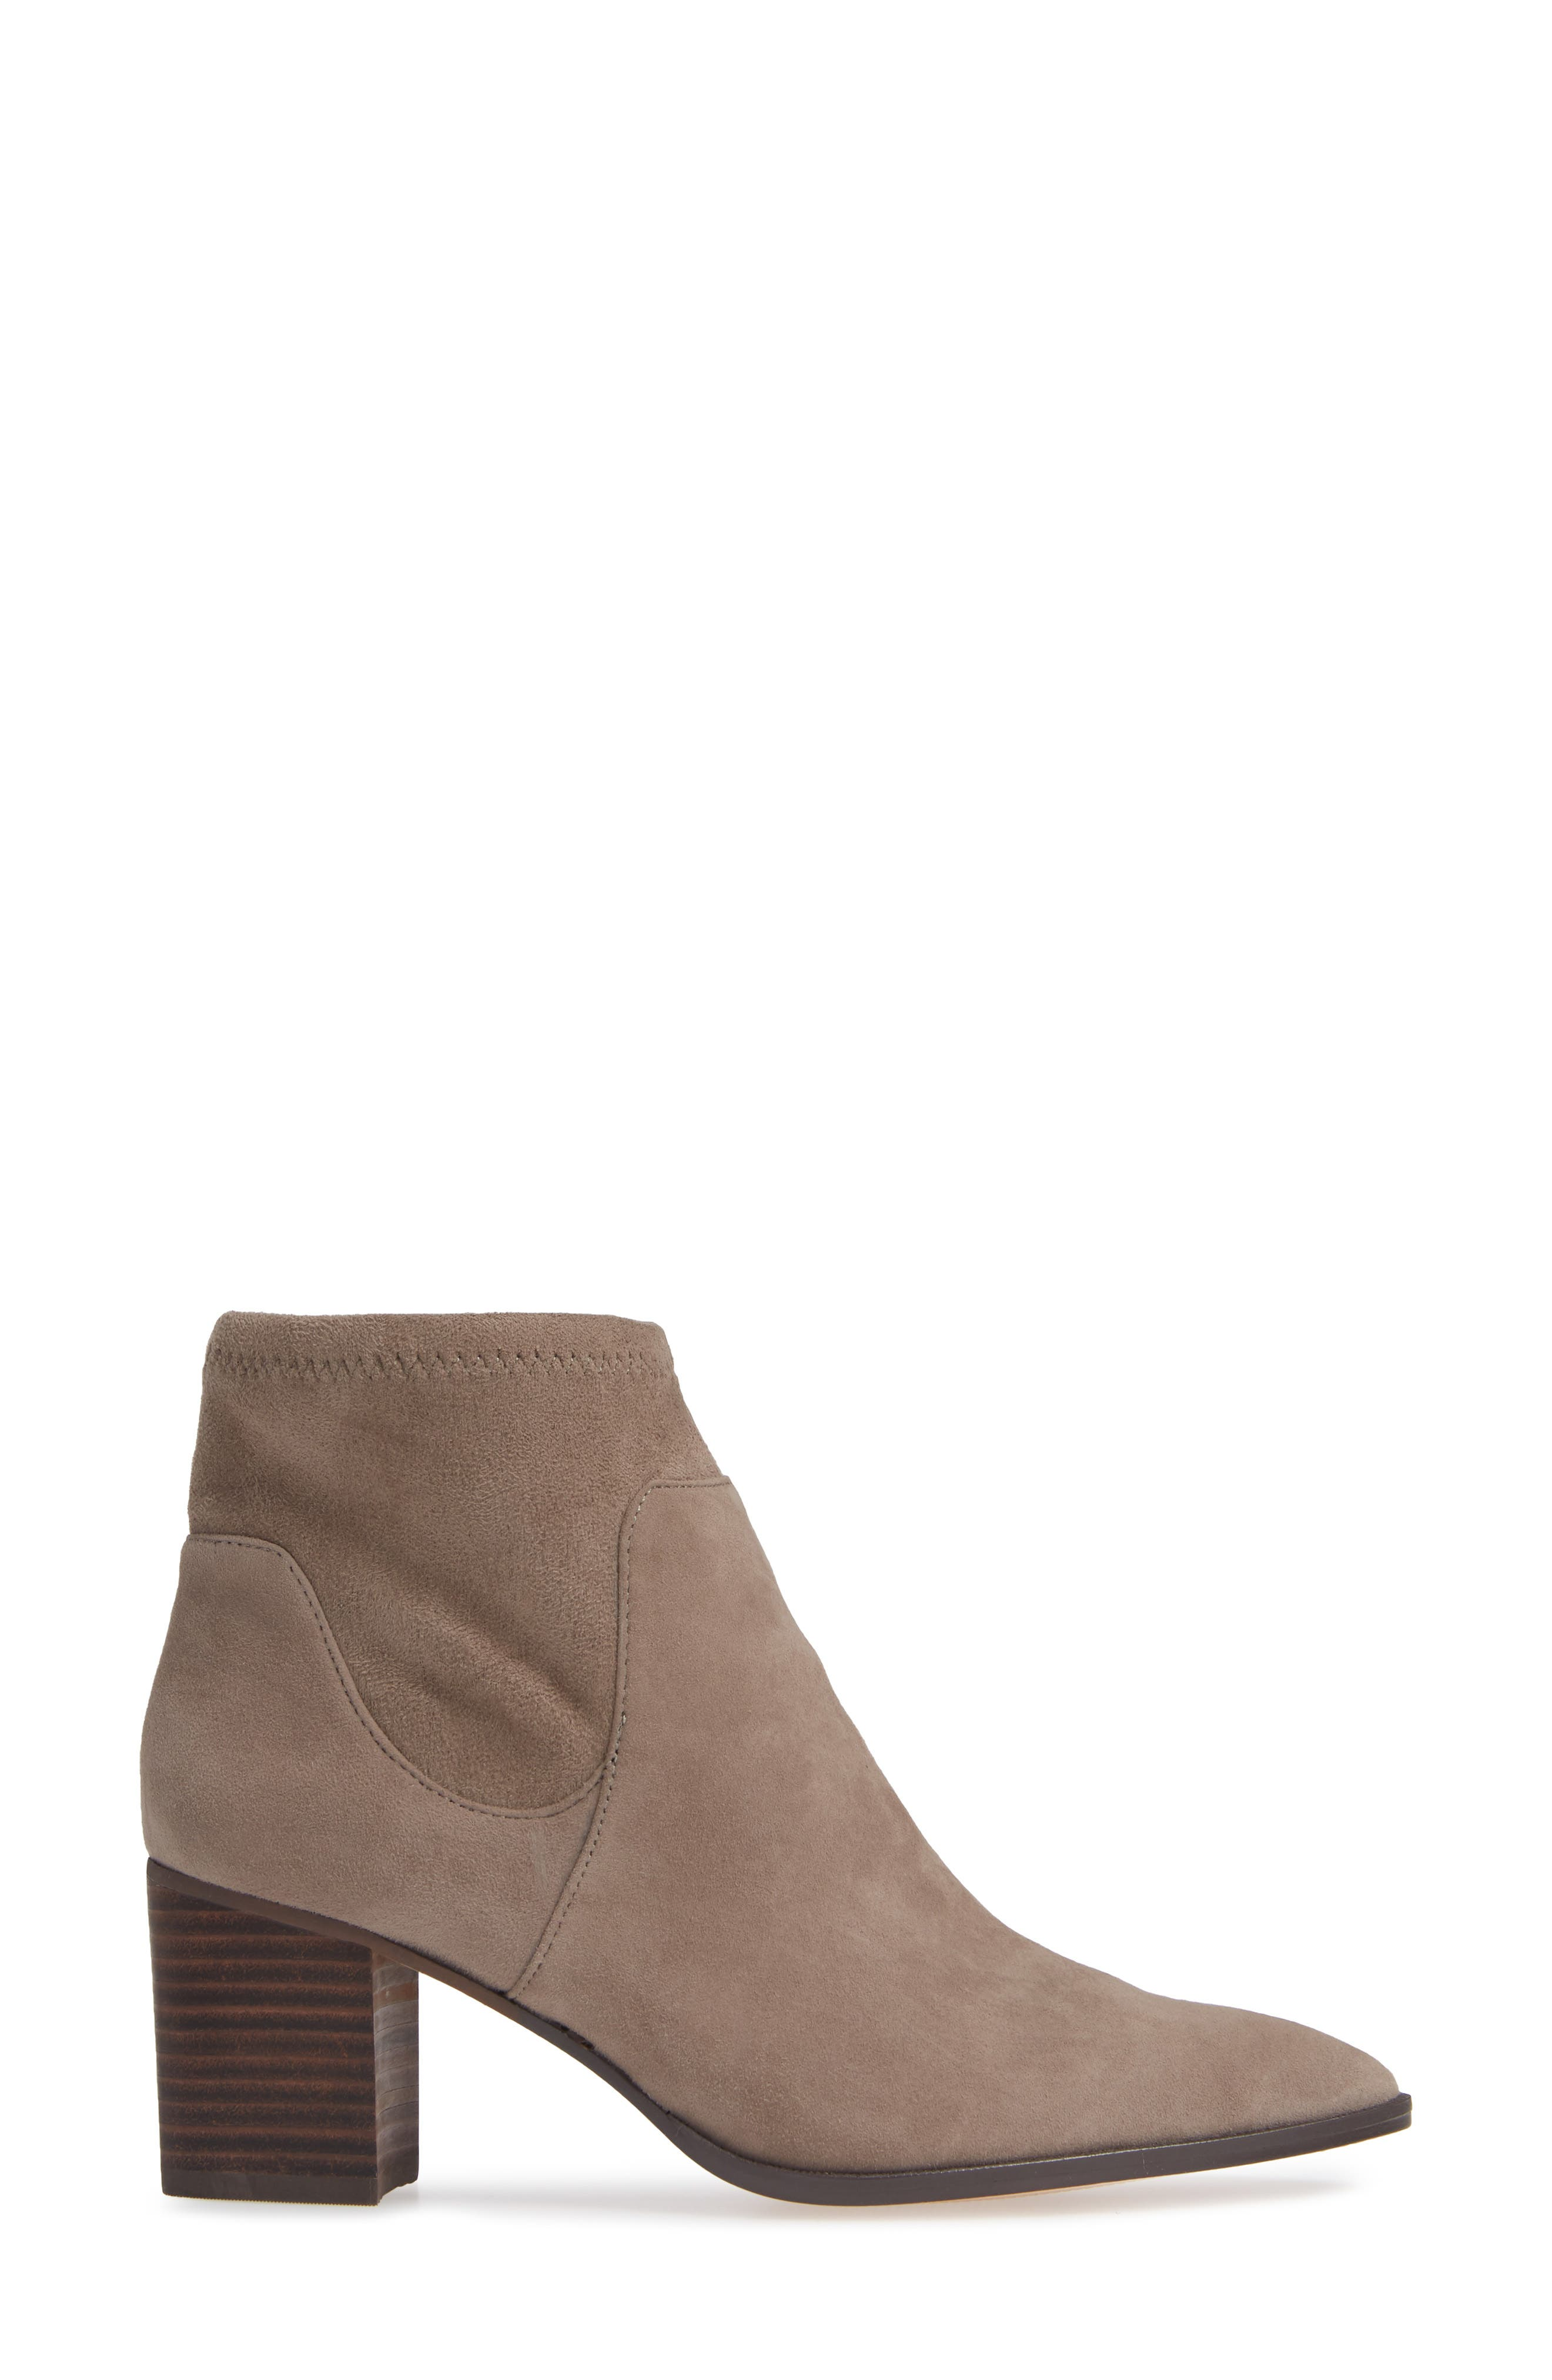 SOLE SOCIETY, Dawnina Bootie, Alternate thumbnail 3, color, PORCINI SUEDE